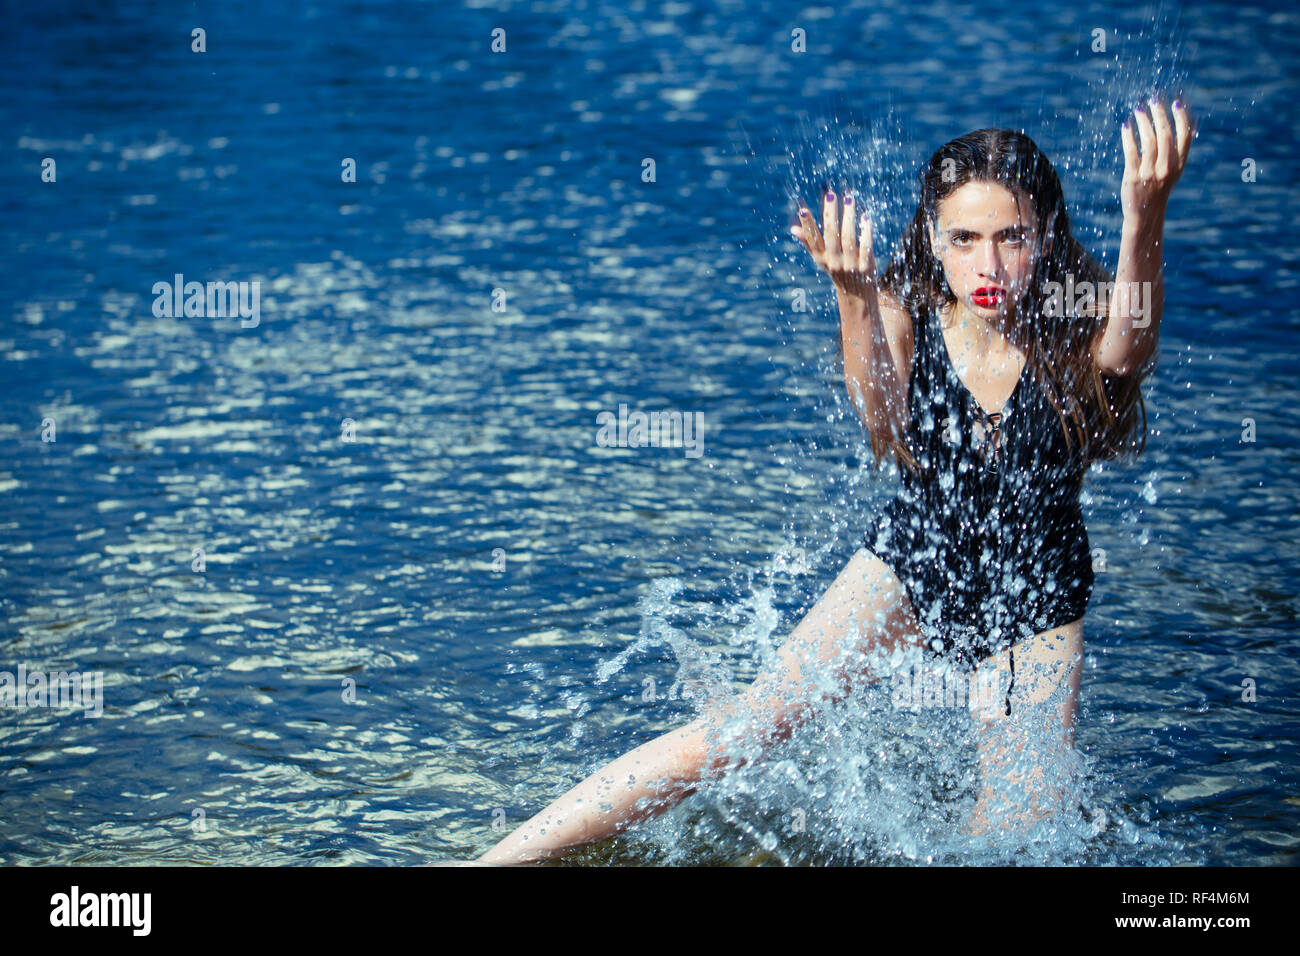 Femme nager à plage, nature, wet girl with long hair. Photo Stock